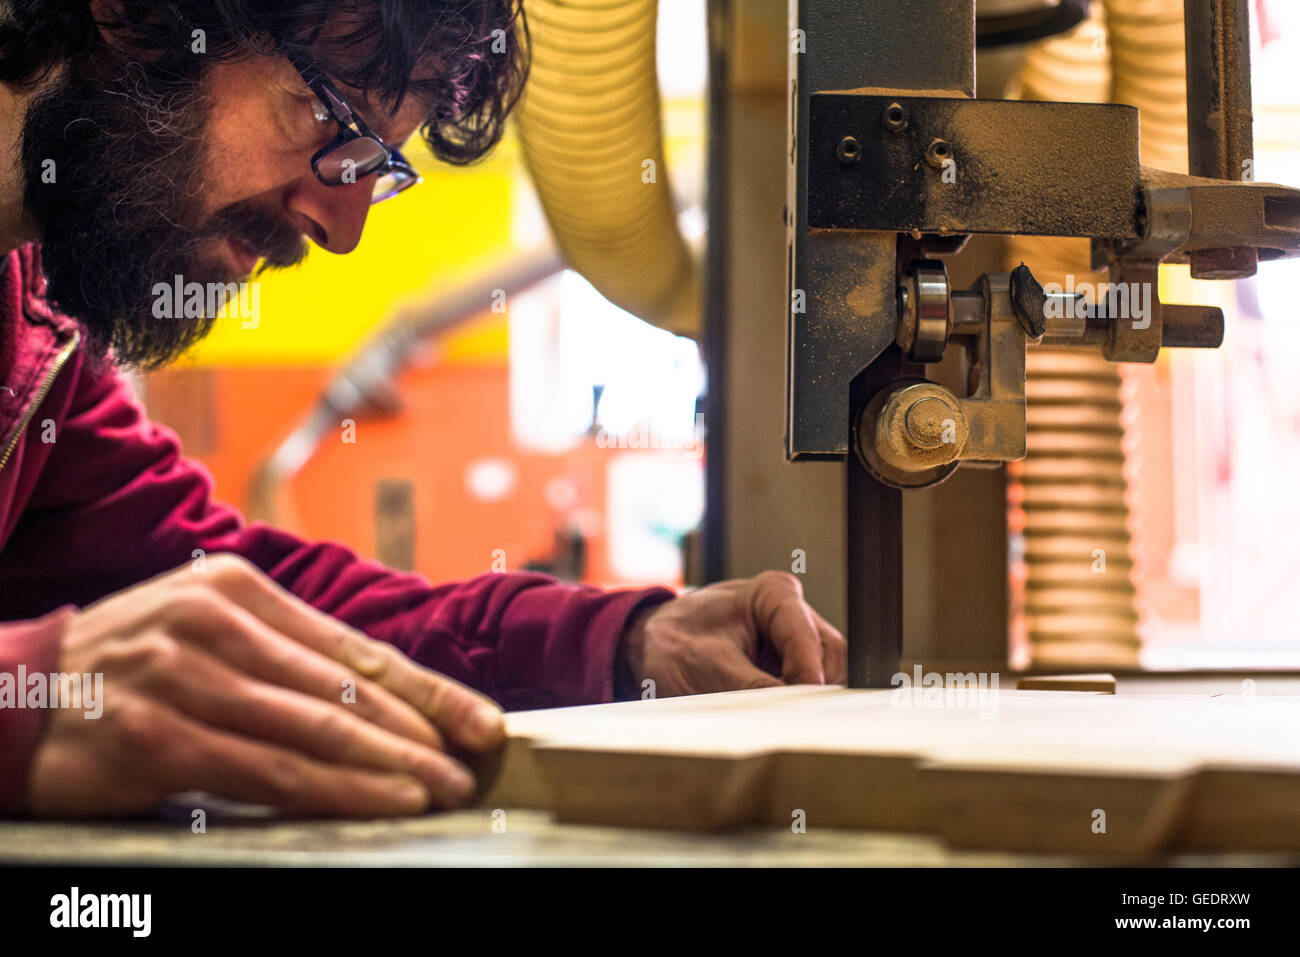 Woodworker Cutting Wood with Band saw Stock Photo